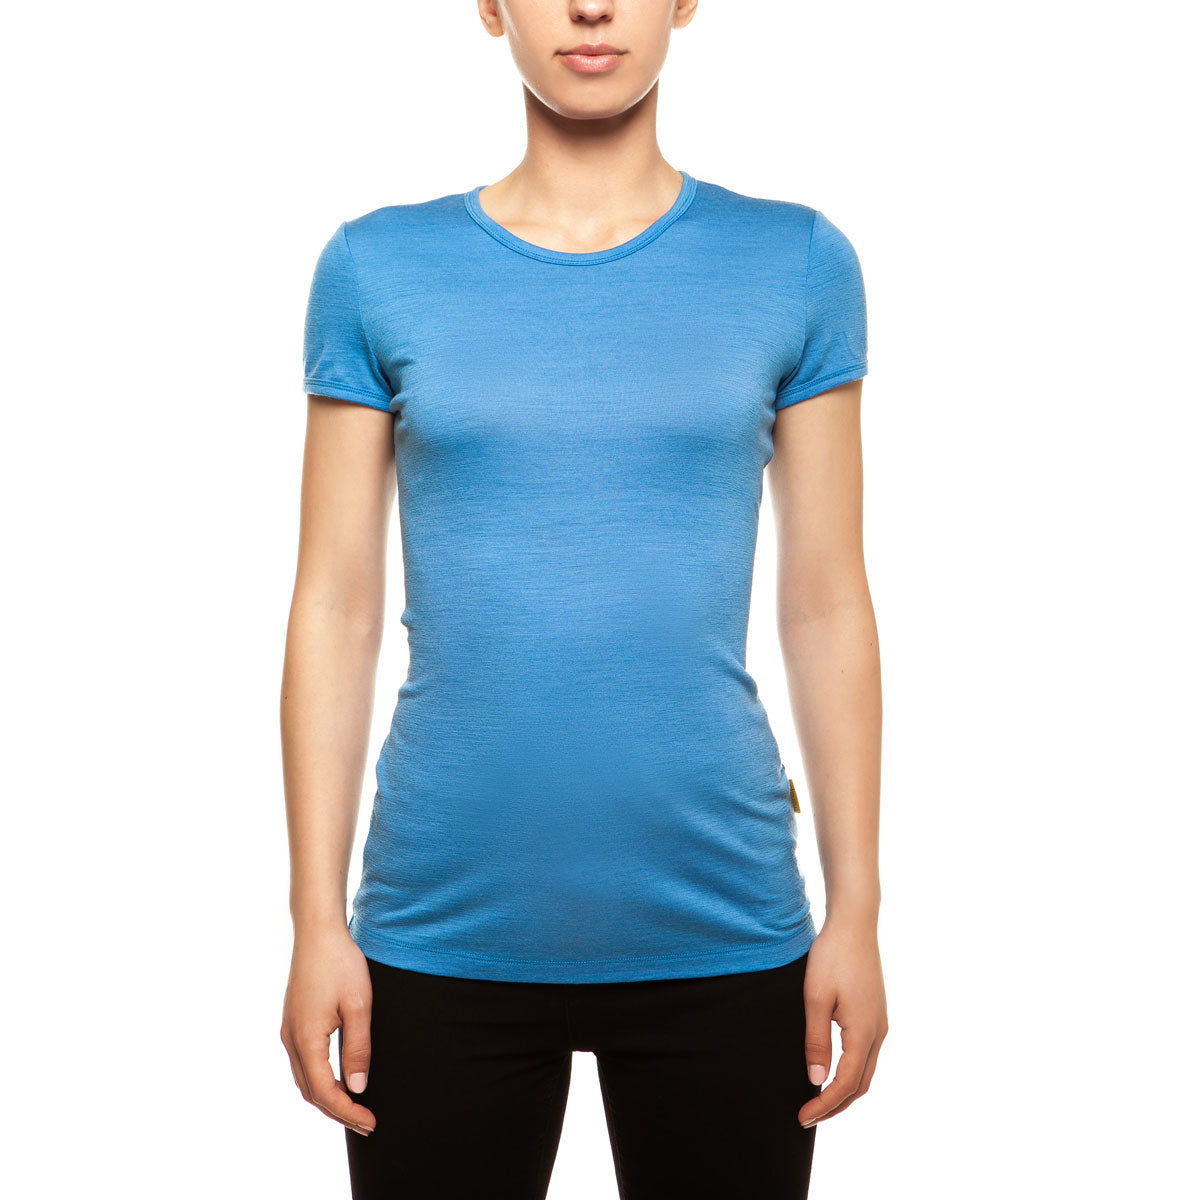 menique Women's Merino 160 Short Sleeve Crew Light Blue Color in nature